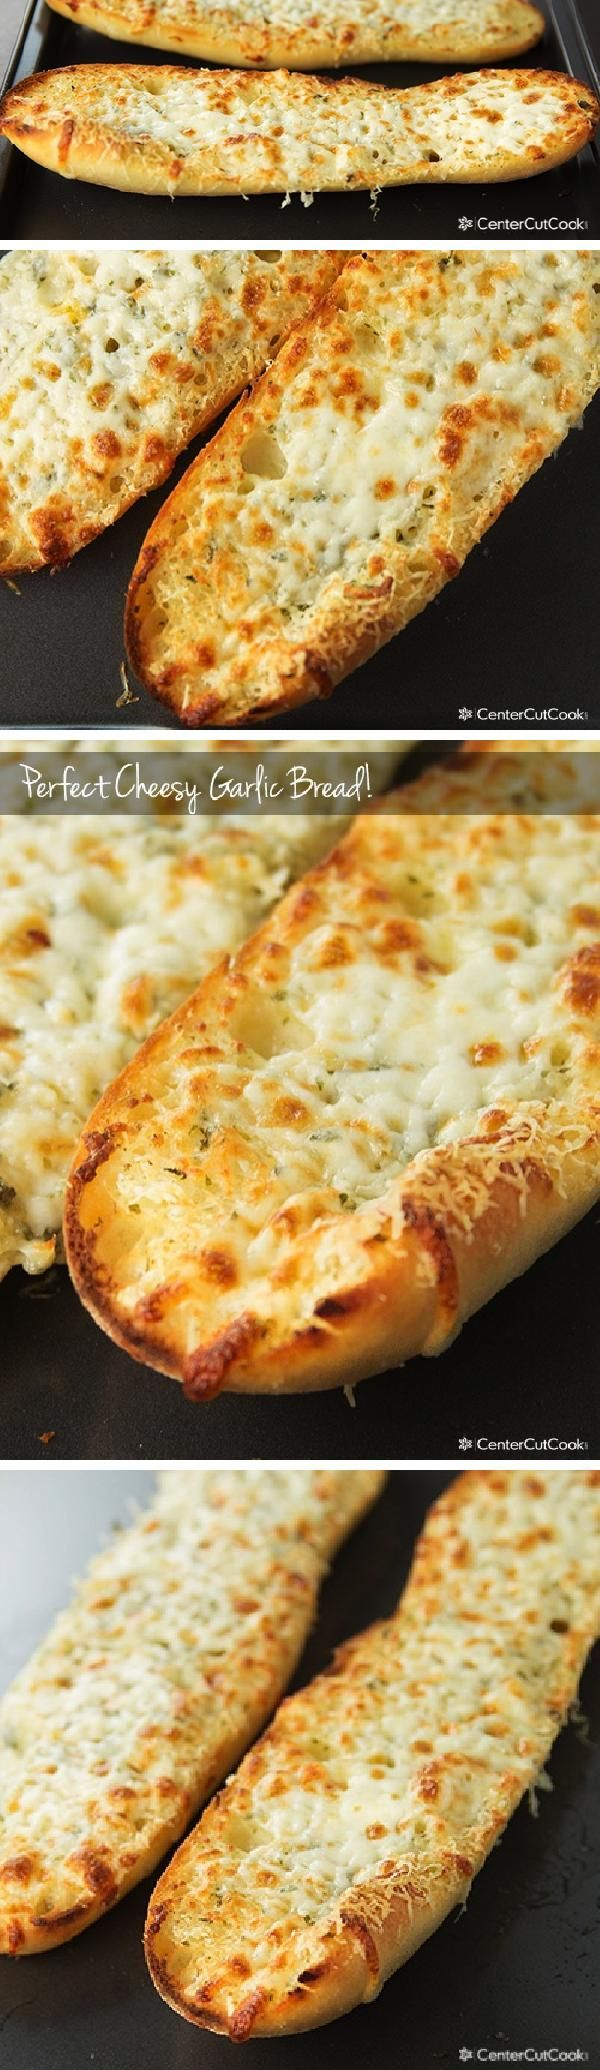 Somehow, GARLIC BREAD seems to be the PERFECT side dish for SO many recipes. It goes great with pastas, soups, even salads. This recipe has just the right amount of butter, garlic, and cheese which makes it the perfect CHEESY Garlic Bread!